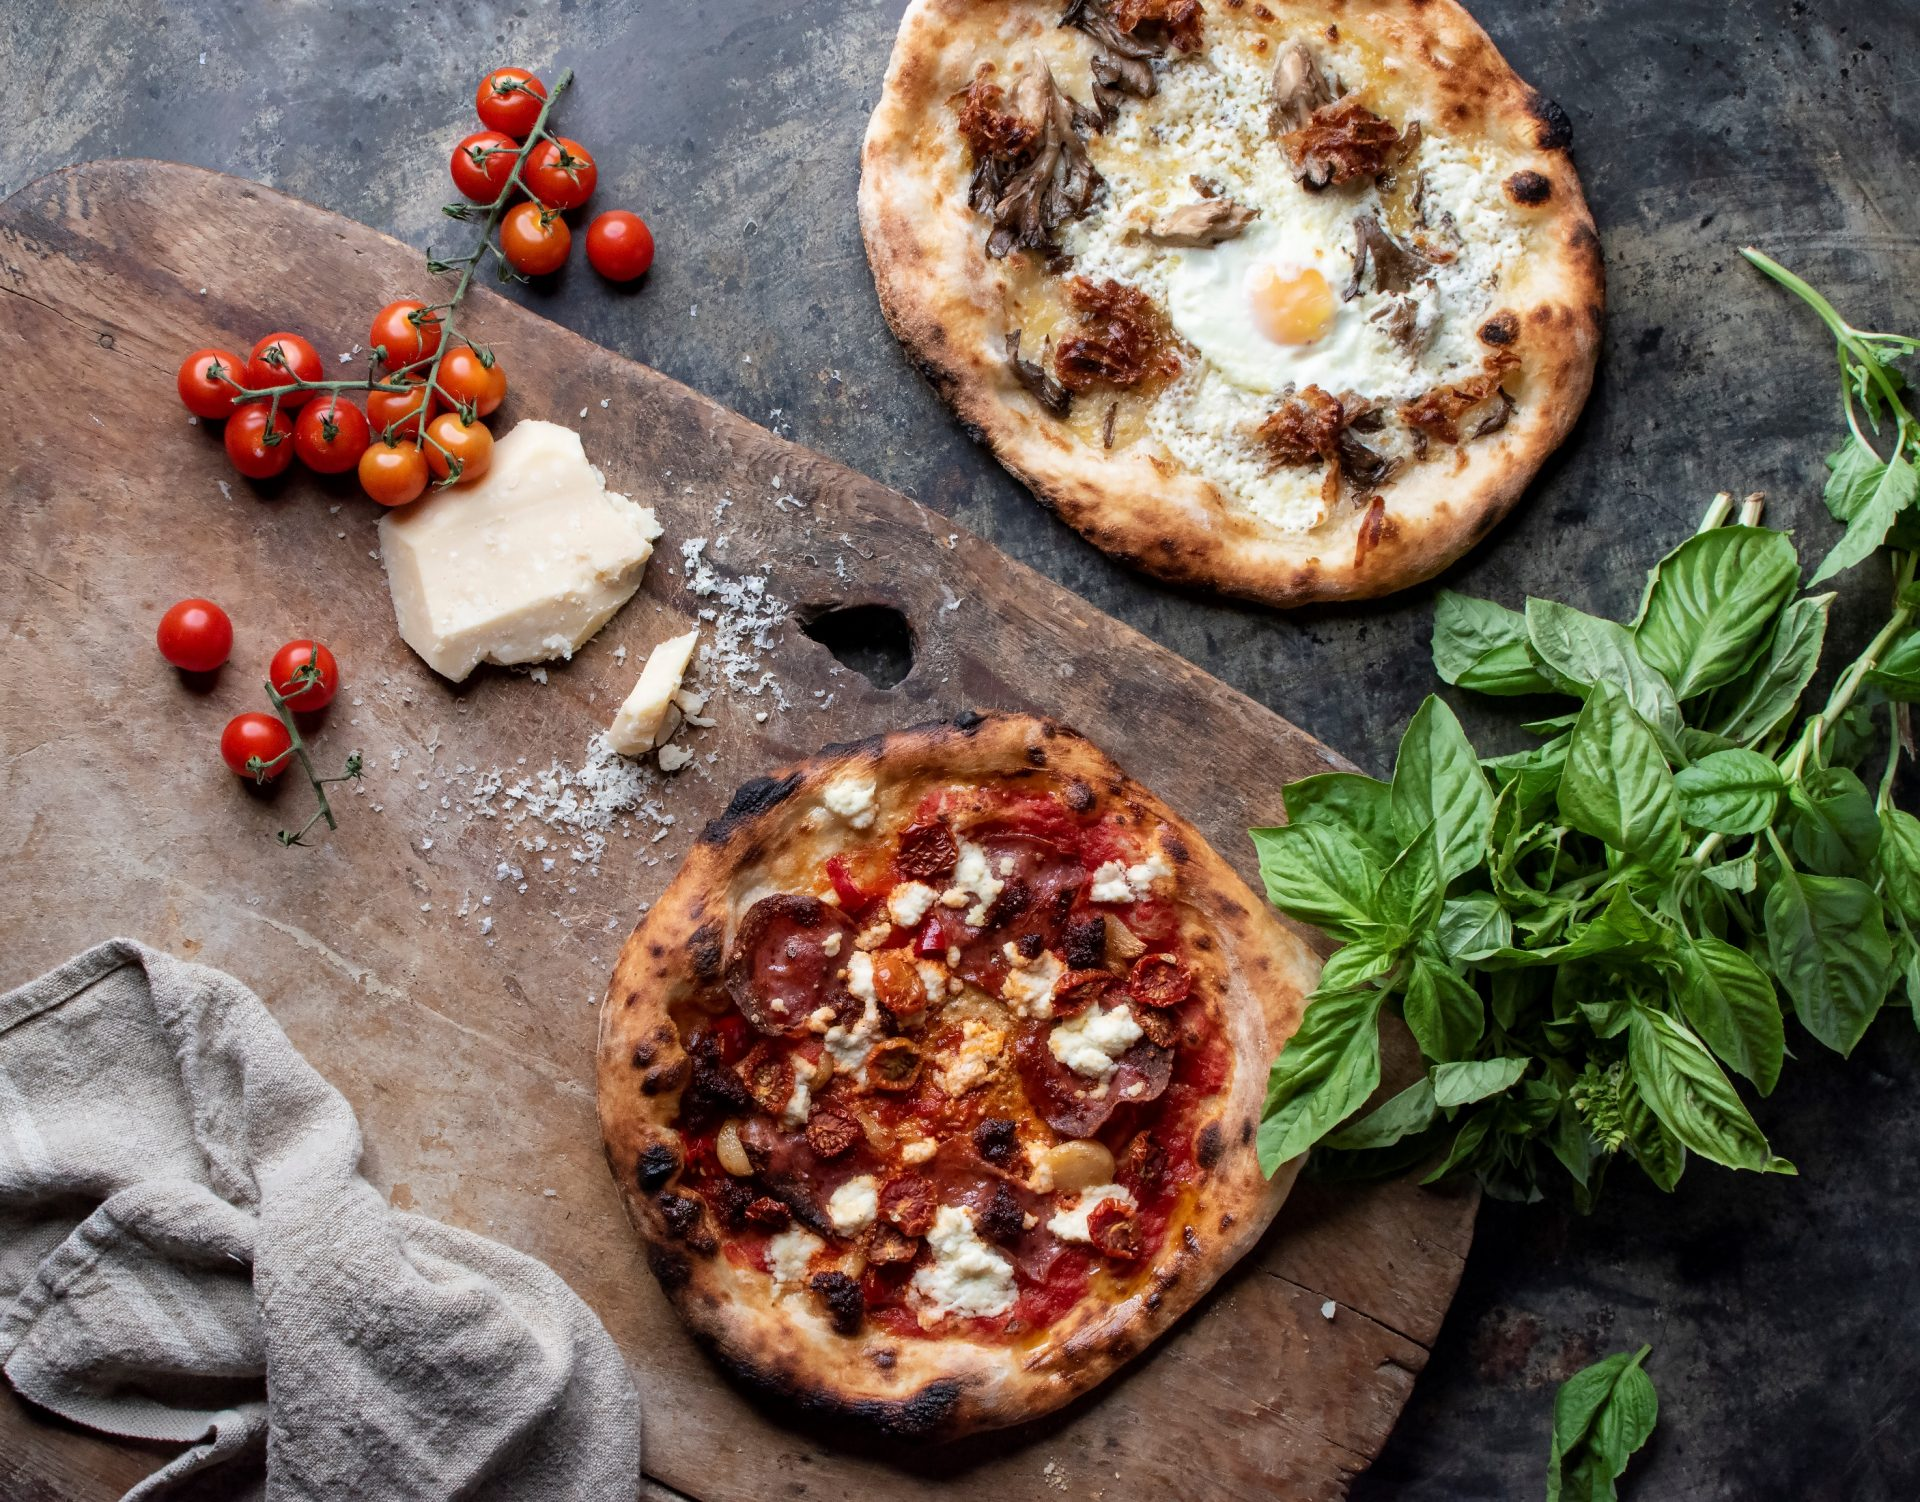 Overhead view of 2 handcrafted pizzas on wooden oven tray with fresh parmesan, vine tomatoes and stalk of herbs